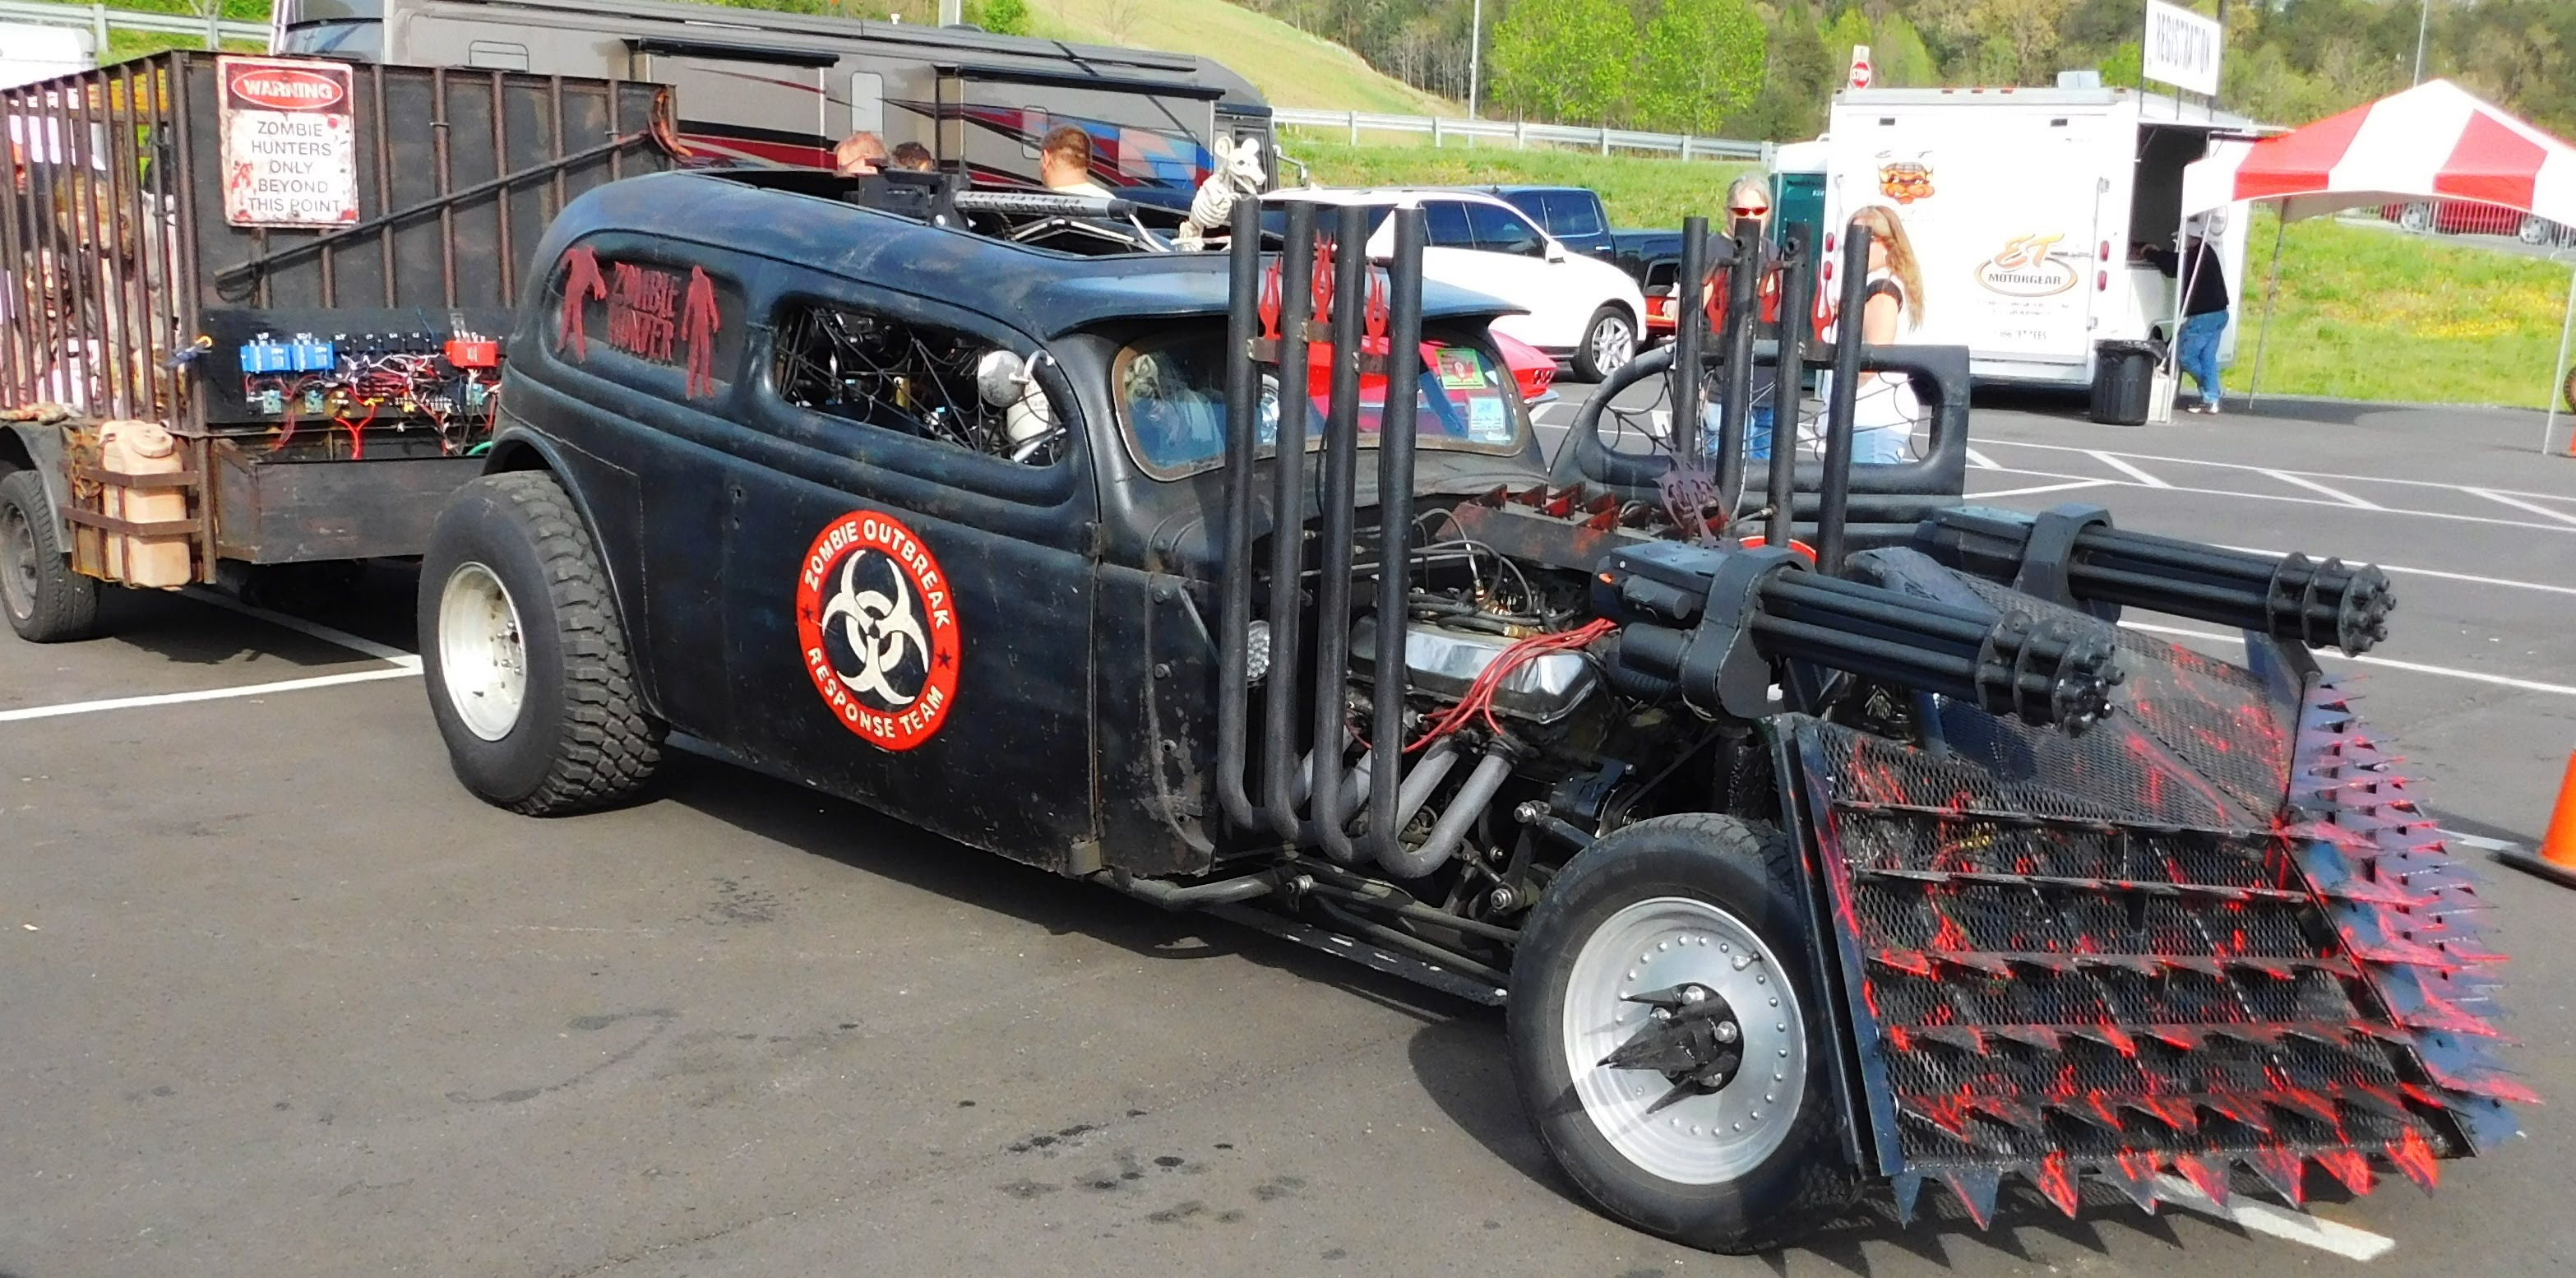 Who Is Afraid Of Zombie Apocalypse When You Vehicles Like These - Cool zombie cars